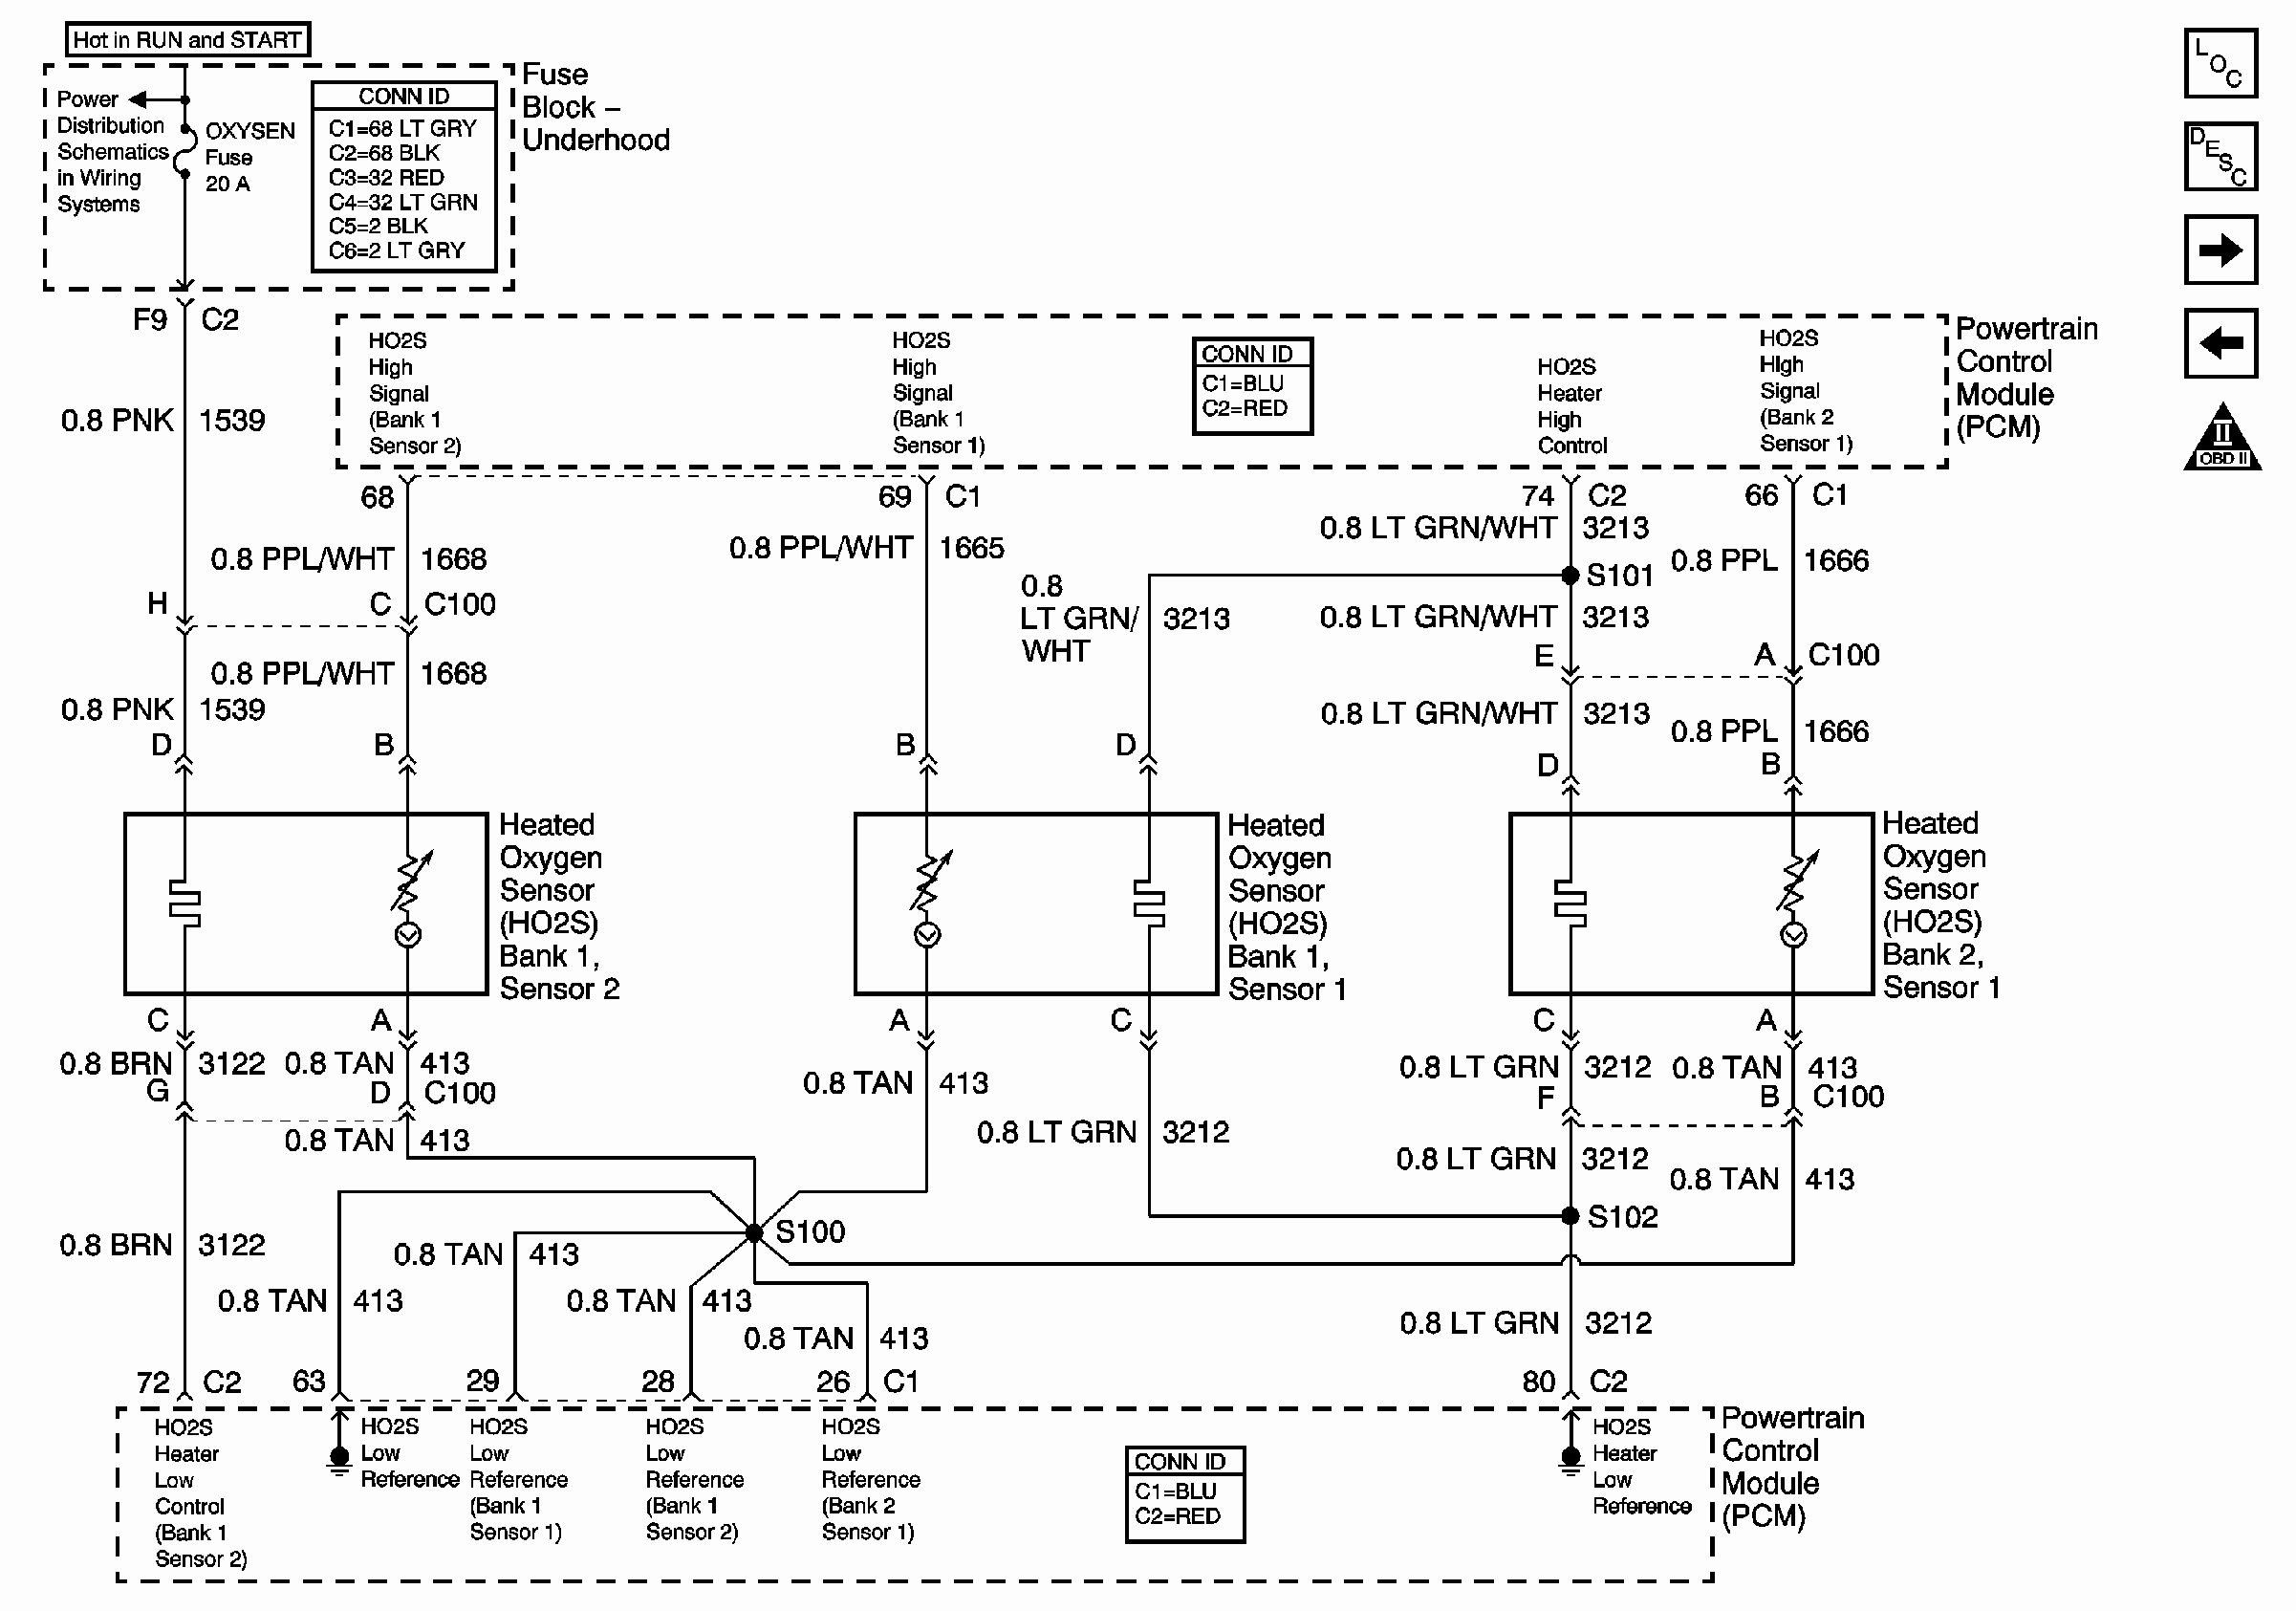 [SCHEMATICS_48IU]  Chevy Equinox Wiring Diagram - 07 Expedition Fuse Diagram for Wiring  Diagram Schematics | 2010 Chevy Equinox Wiring Diagram Download |  | Wiring Diagram Schematics